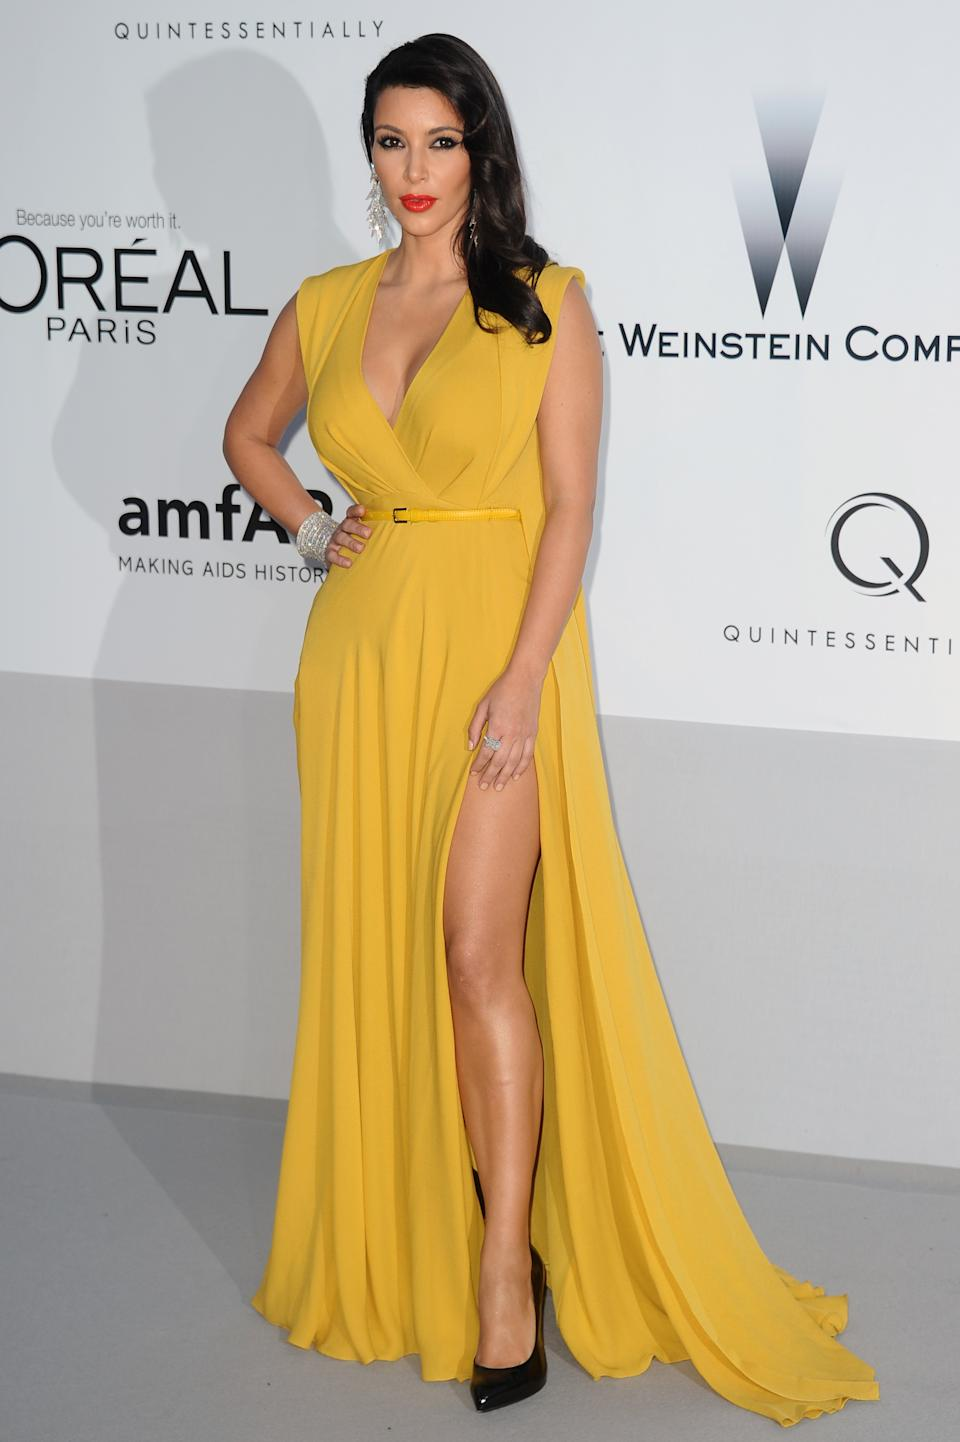 Kim Kardashian arrives for the amfAR Cinema Against AIDS benefit at the Hotel du Cap-Eden-Roc, during the 65th Cannes film festival, in Cap d'Antibes, southern France, Thursday, May 24, 2012. (AP Photo/Jonathan Short)